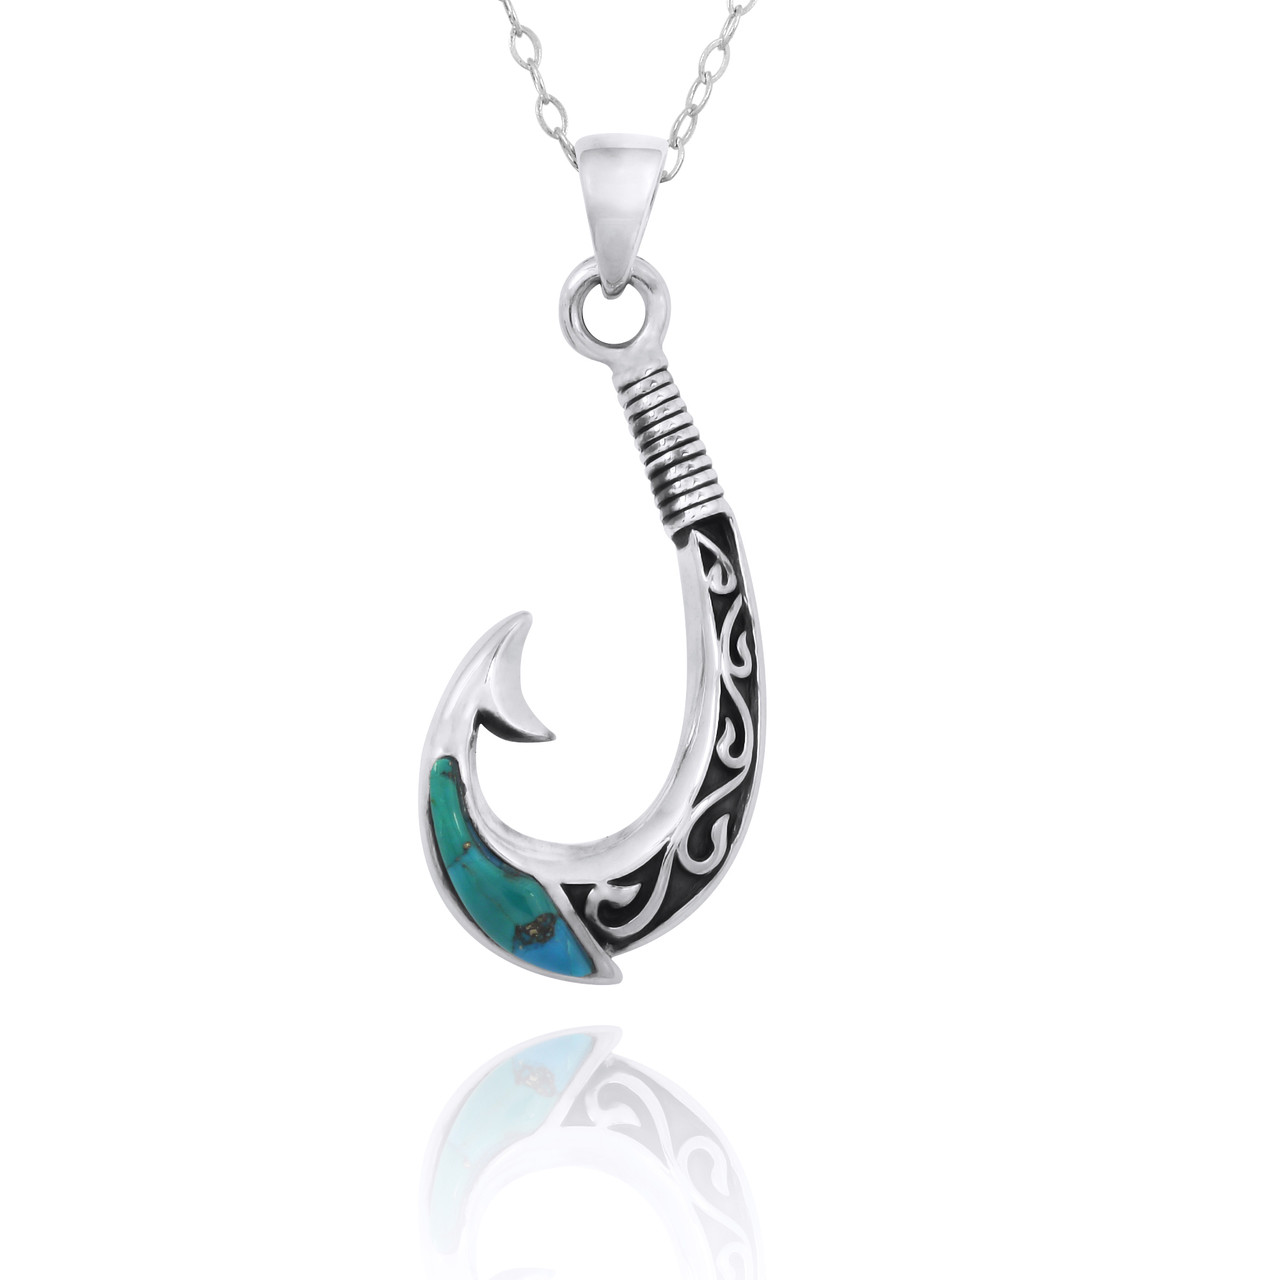 Maori Fishhook Pendant with Compressed Turquoise